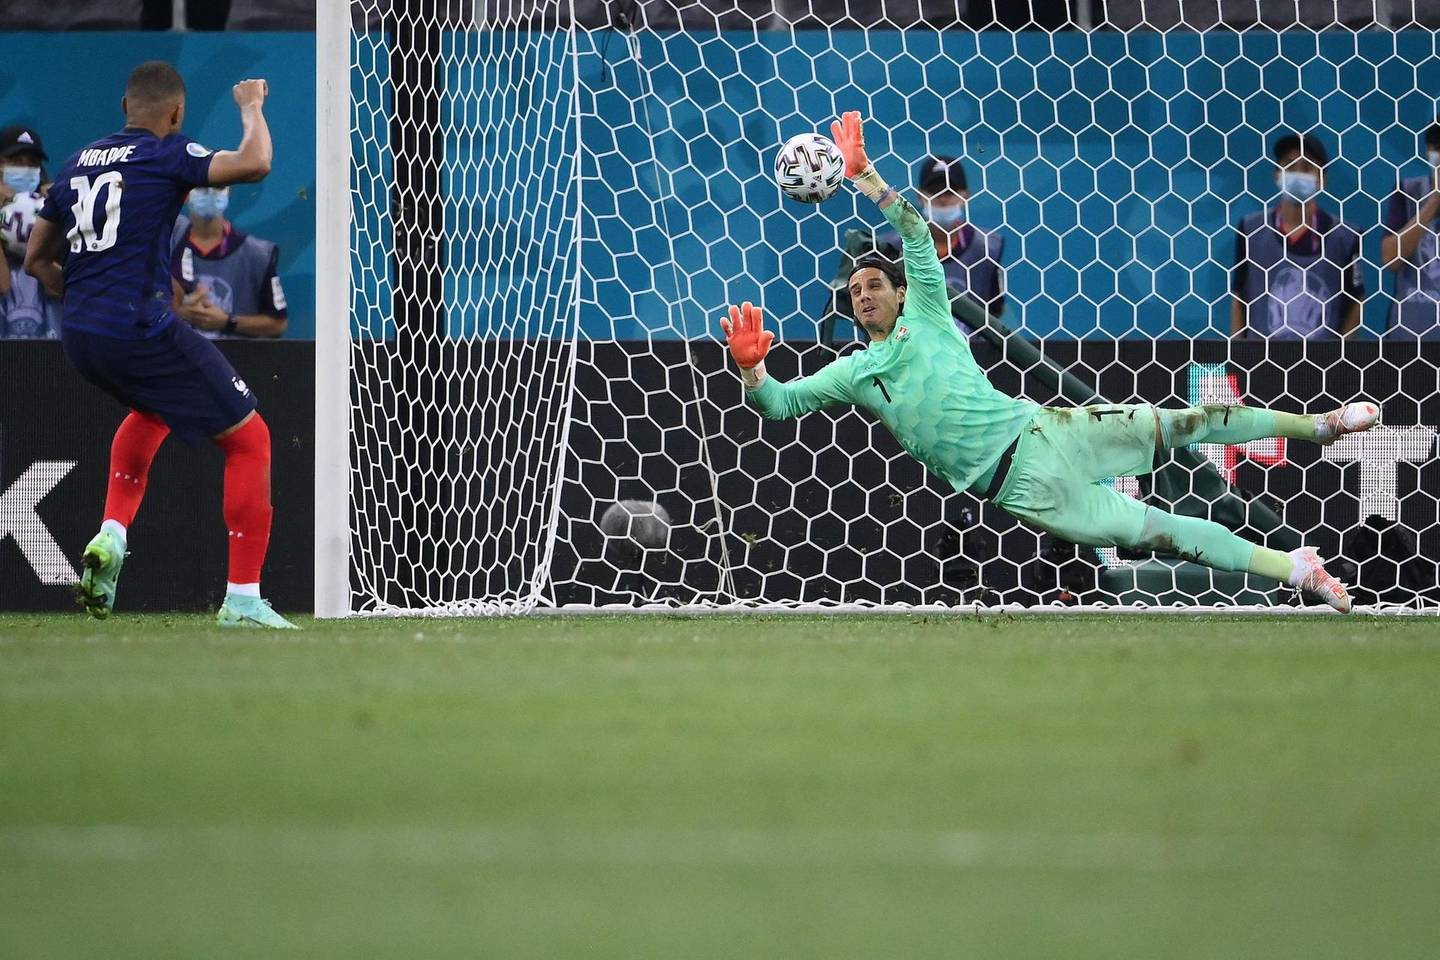 TOPSHOT - Switzerland's goalkeeper Yann Sommer (R) saves a penalty by France's forward Kylian Mbappe during the UEFA EURO 2020 round of 16 football match between France and Switzerland at the National Arena in Bucharest on June 28, 2021. / AFP / POOL / FRANCK FIFE